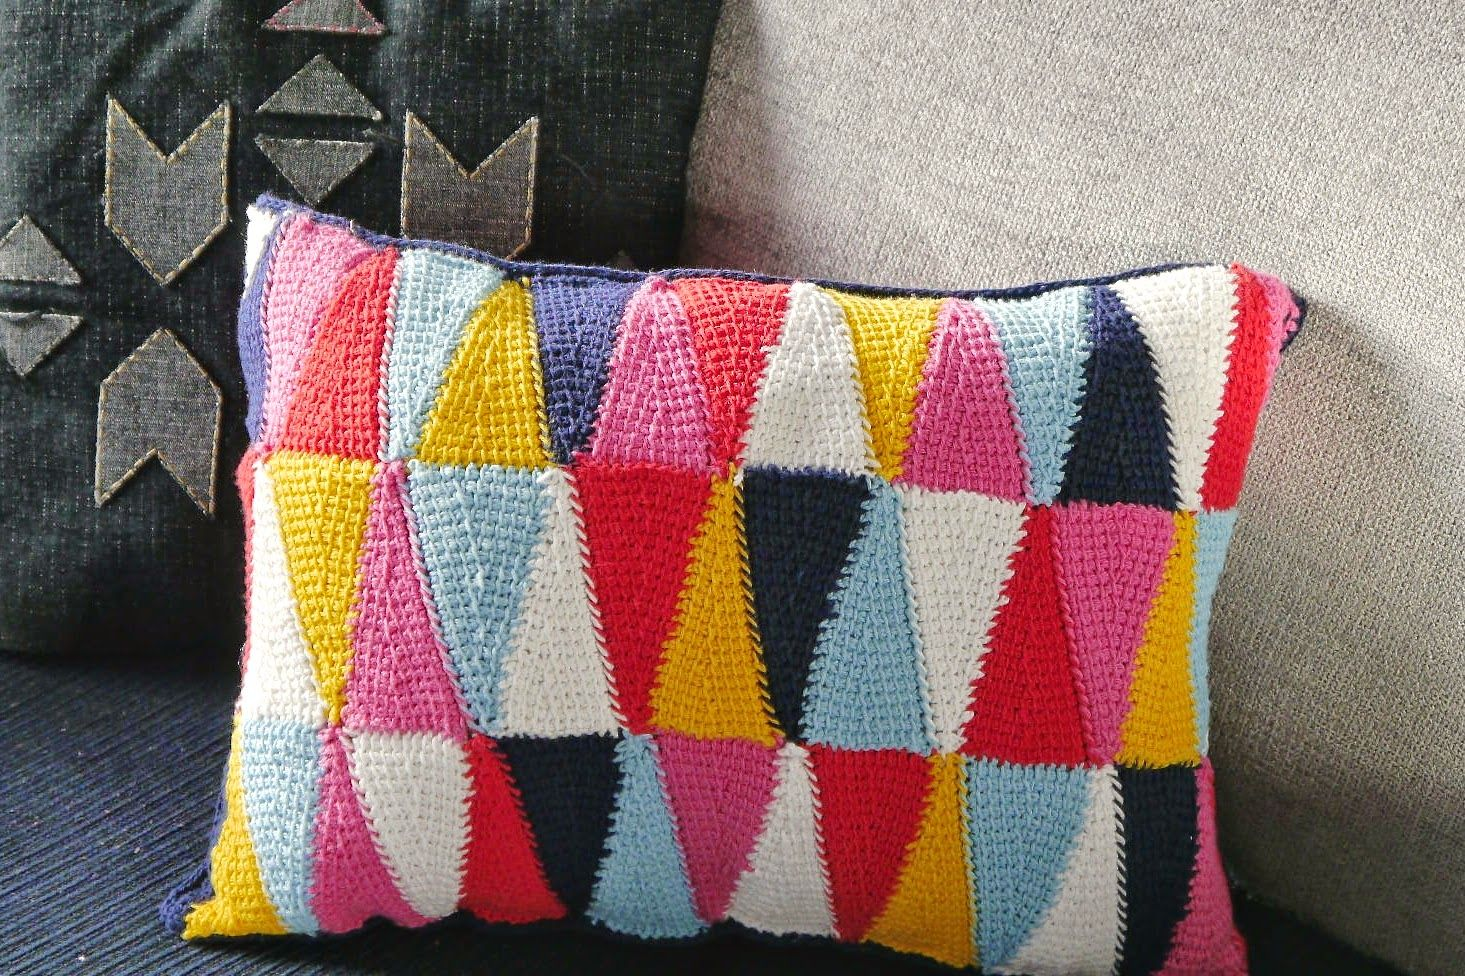 15 Warm and Cozy FREE Crochet DIY Projects - The Cottage Market